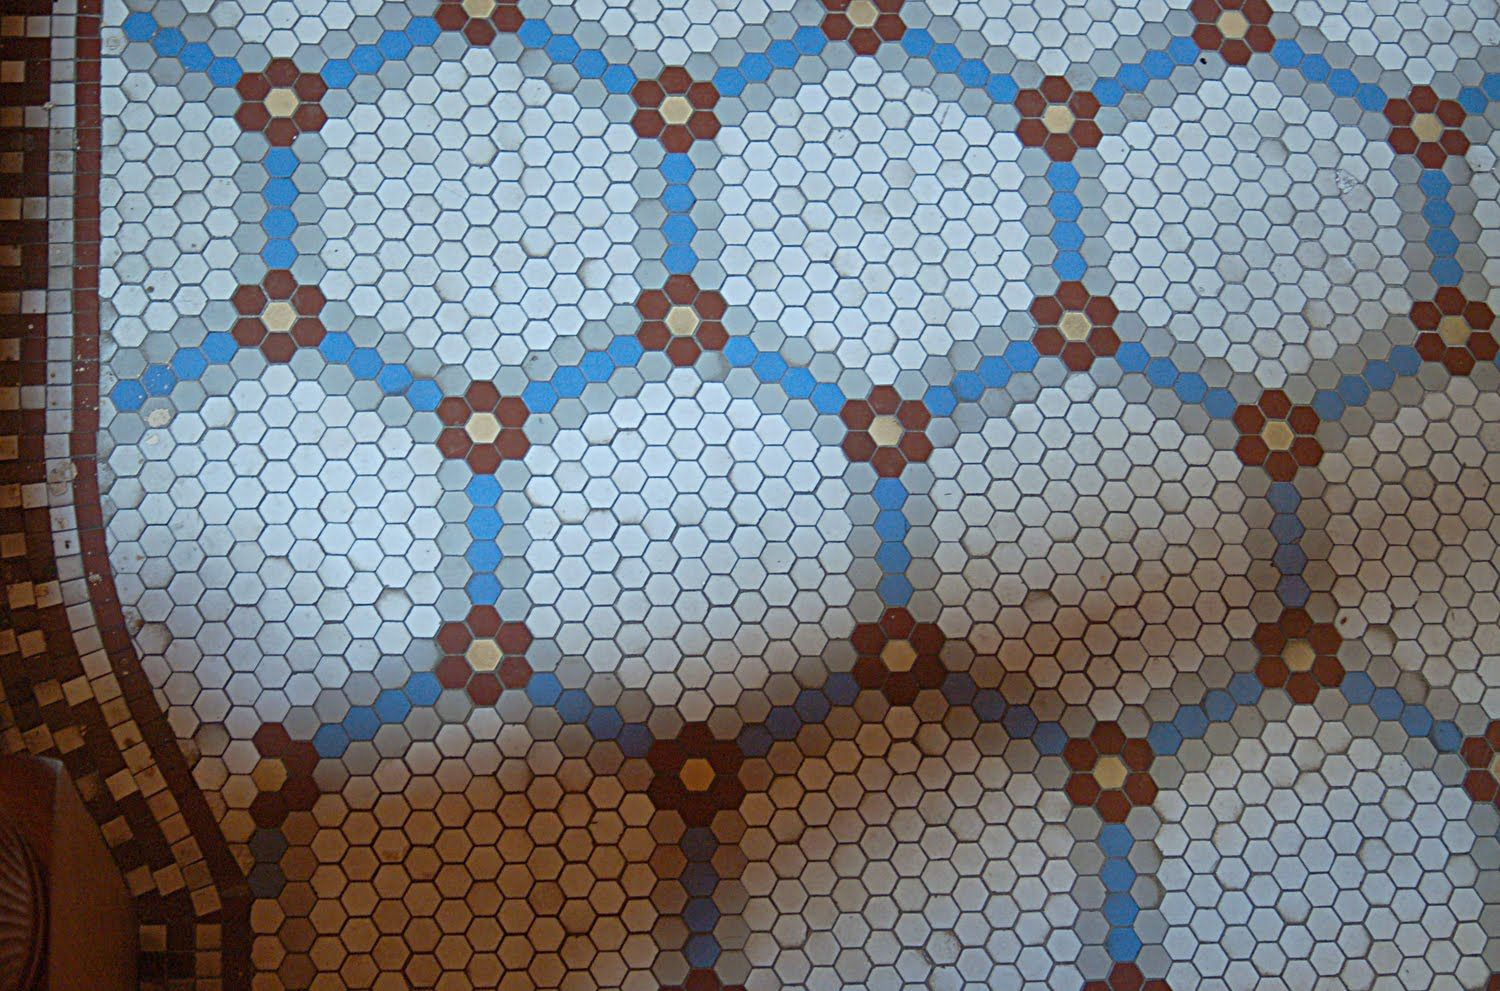 Disdressed hexagon obsession no better inspiration than floor tiles design ideas elegant flooring design ideas for kitchen and bathroom areas with blue hexagon floor tile pattern dailygadgetfo Choice Image